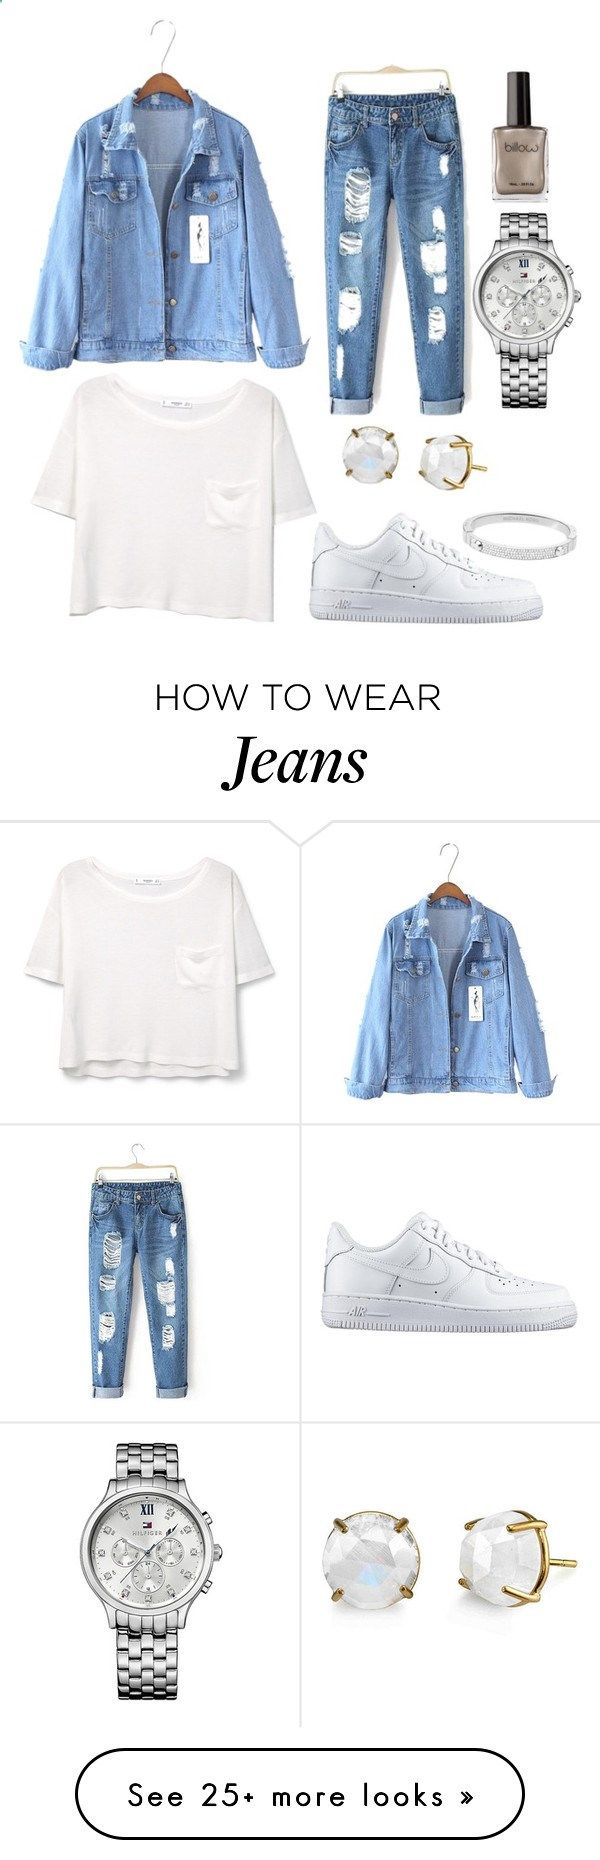 Jeans by frederiquecuyk on Polyvore featuring MANGO, Michael Kors, NIKE, Tommy Hilfiger, womens clothing, women, female, woman, misses and juniors